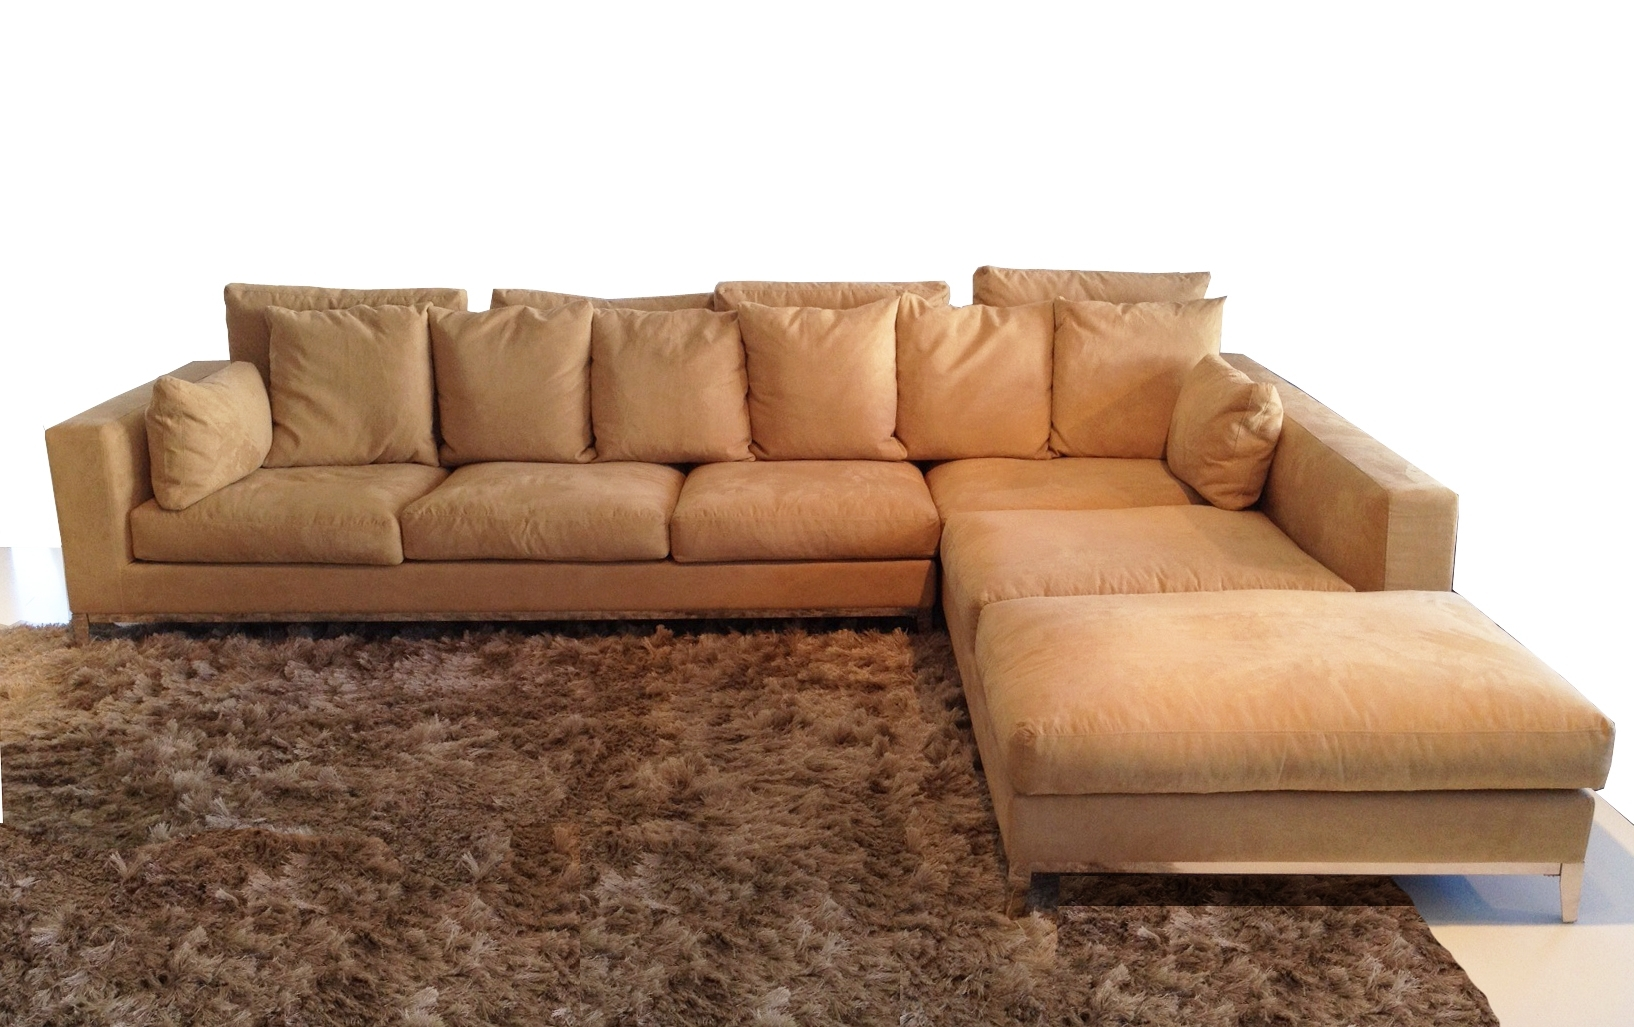 Modern Furniture For Most Current Long Modern Sofas (View 9 of 15)